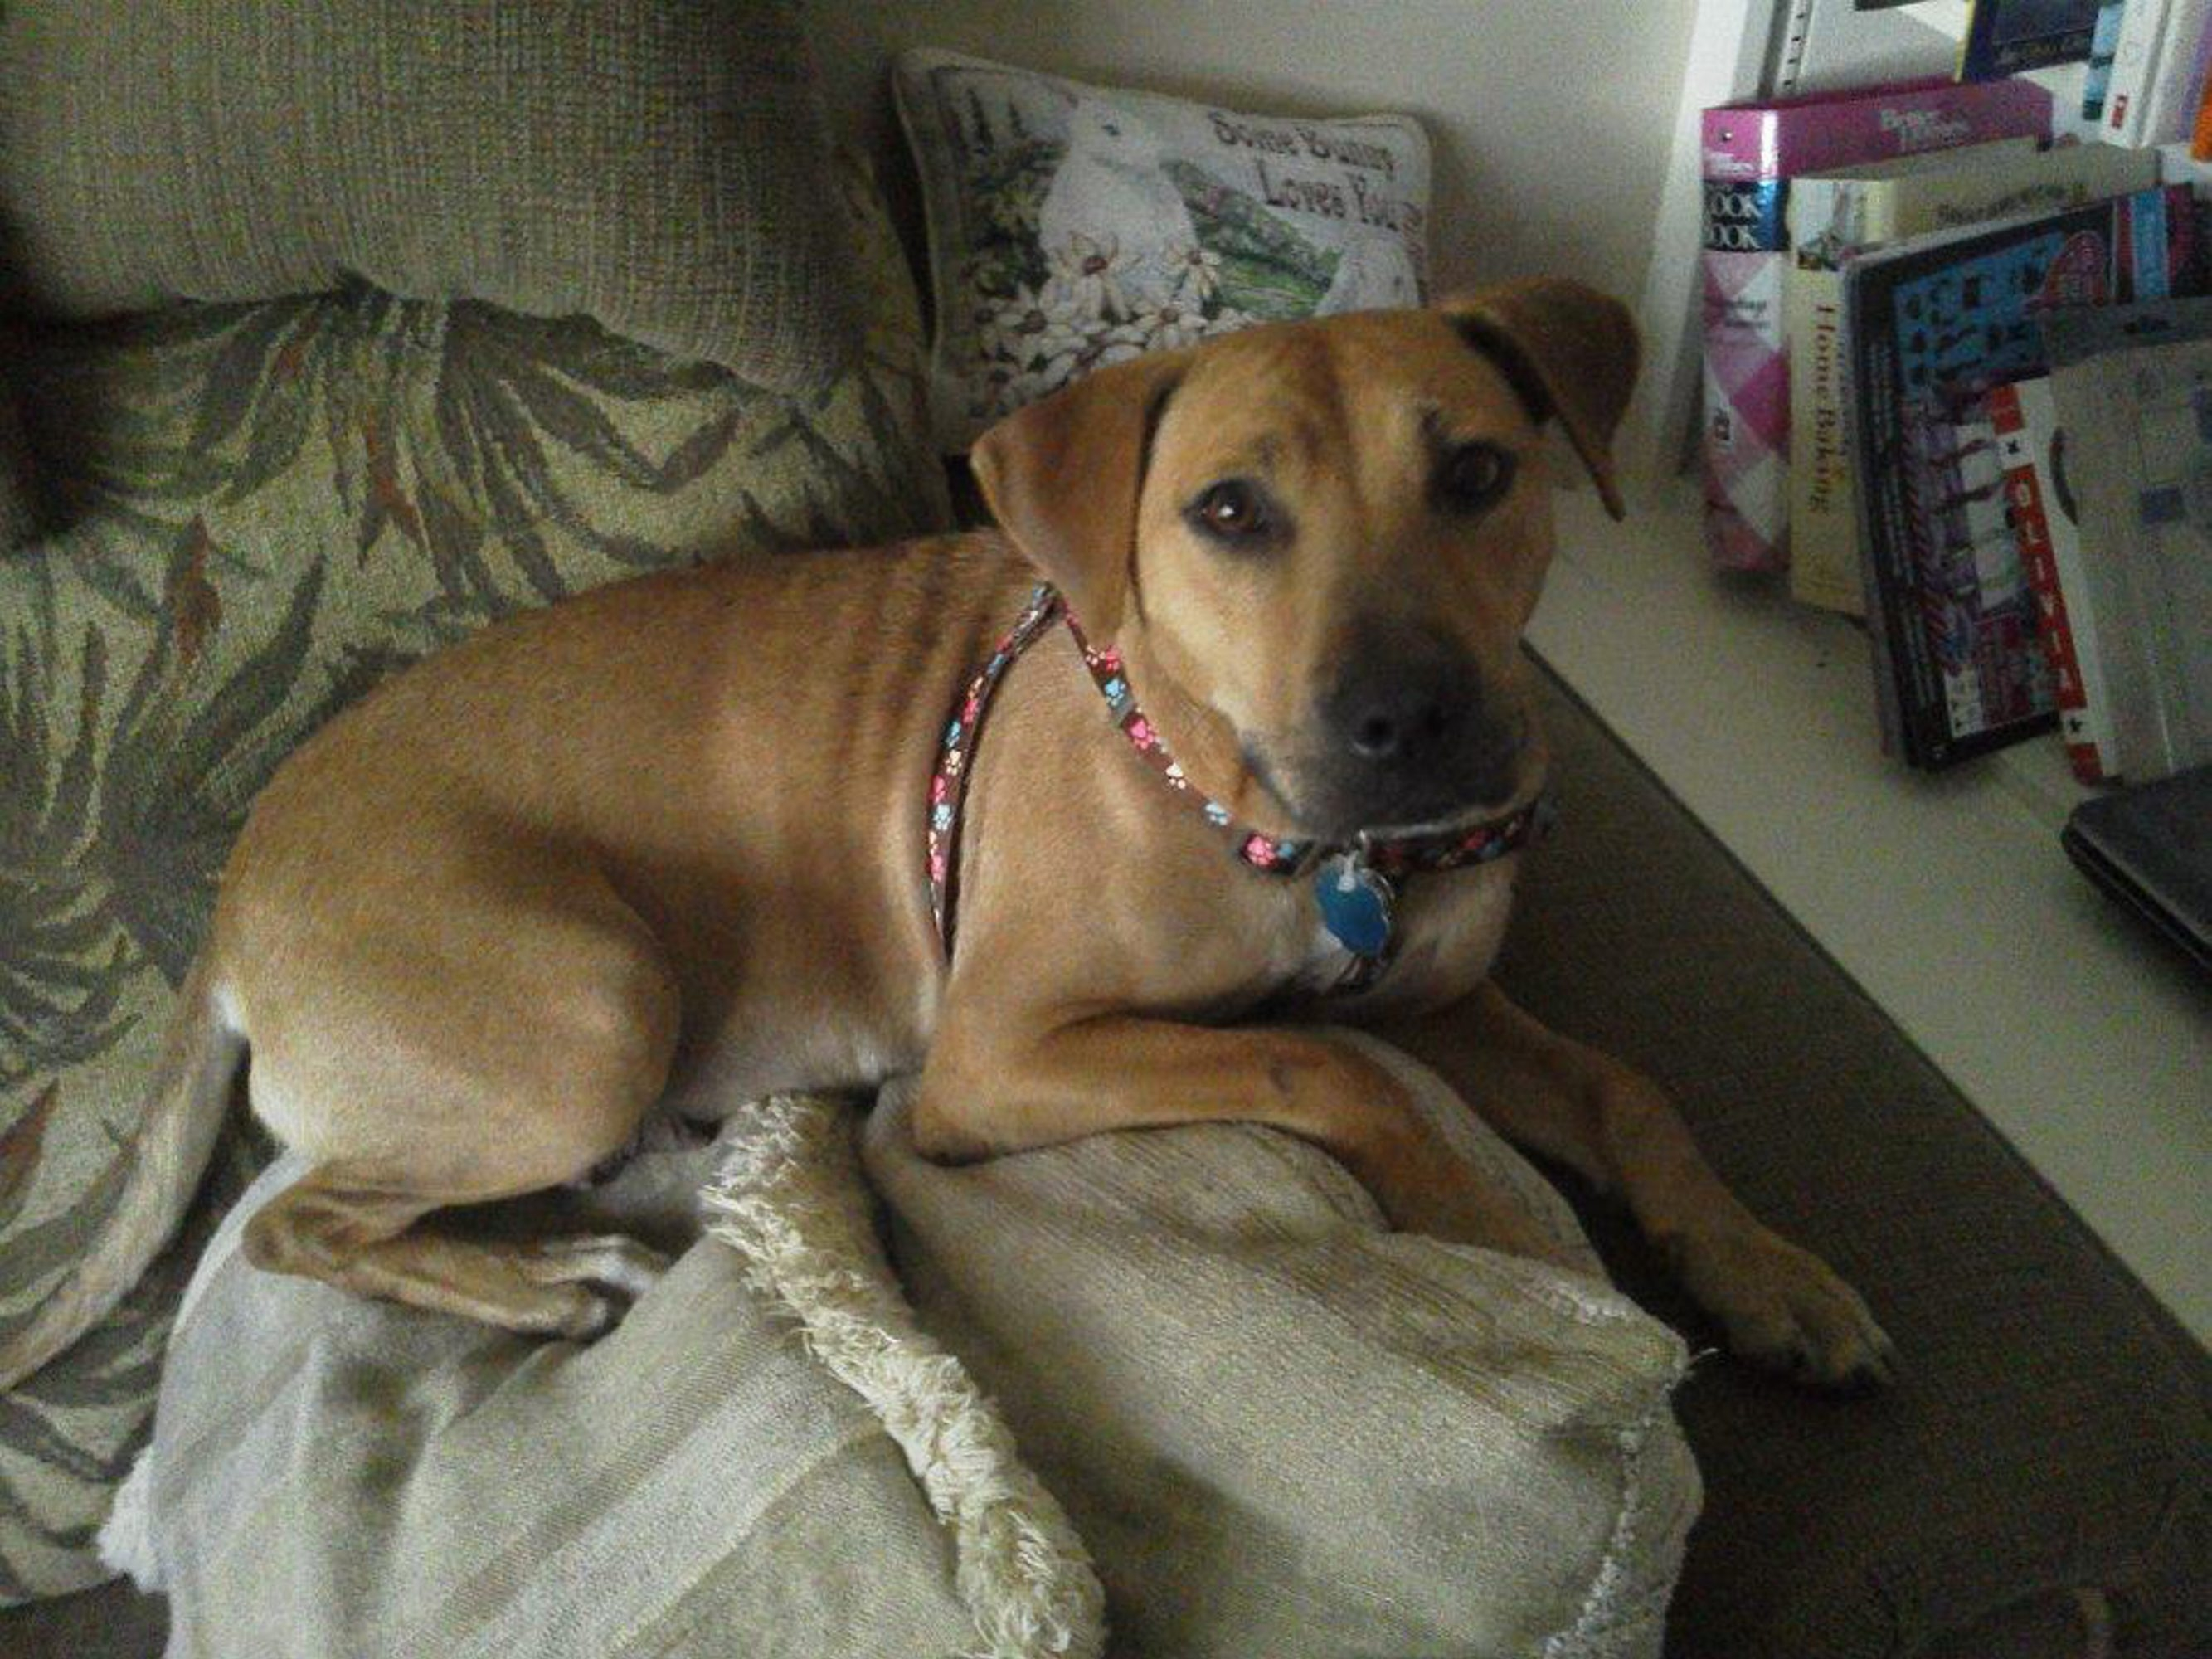 Faith, who was nearly euthanized, found a loving home and led four women to begin an animal rescue group.